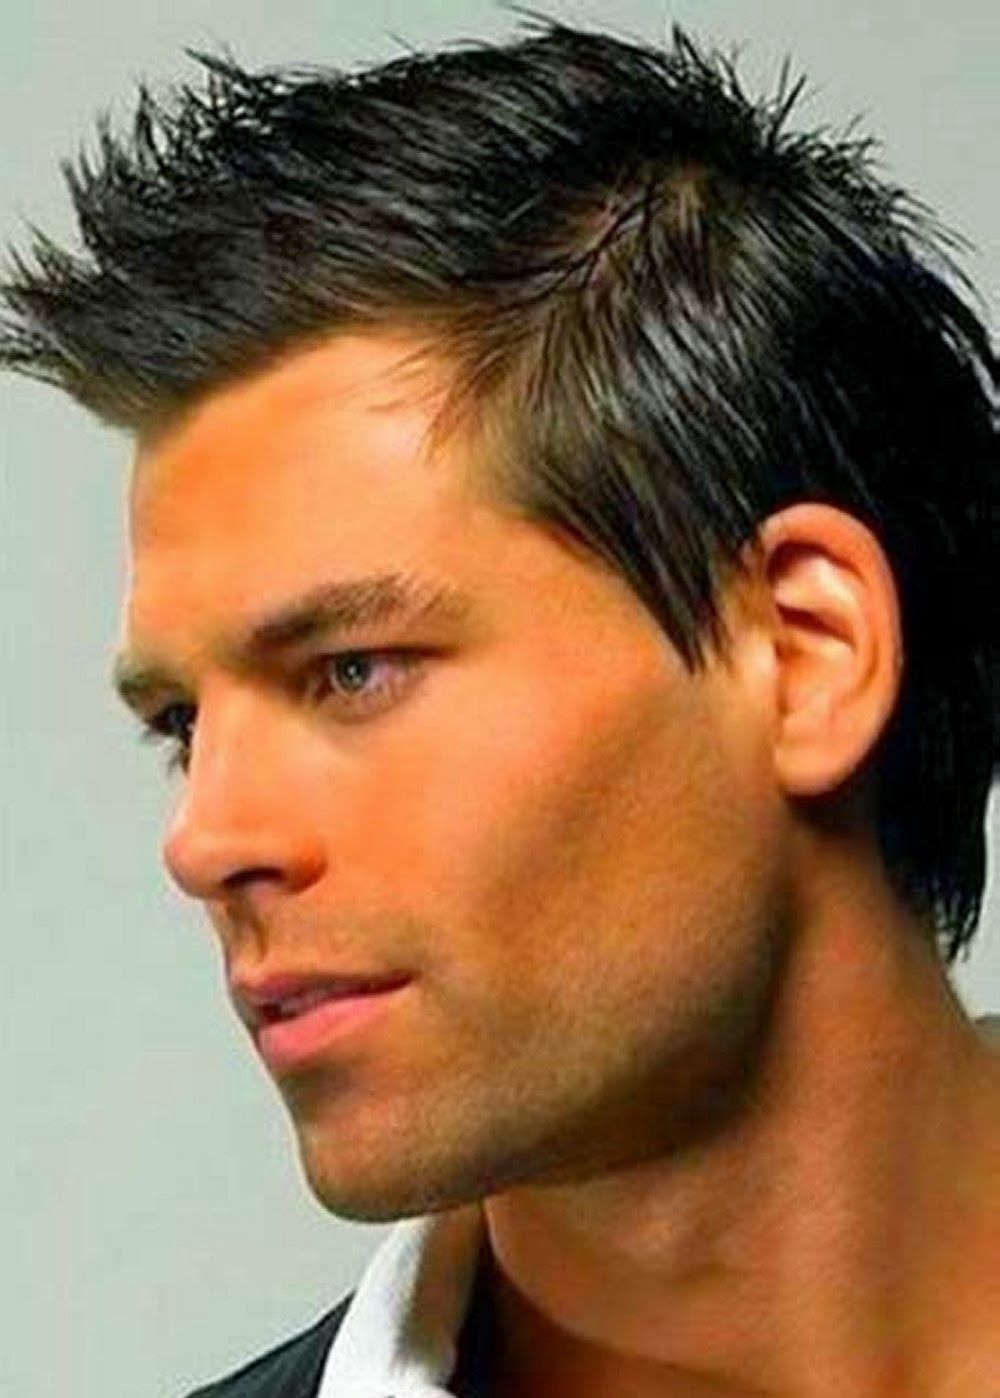 Trends Short Romance Hairstyles For Men 2014 Romance